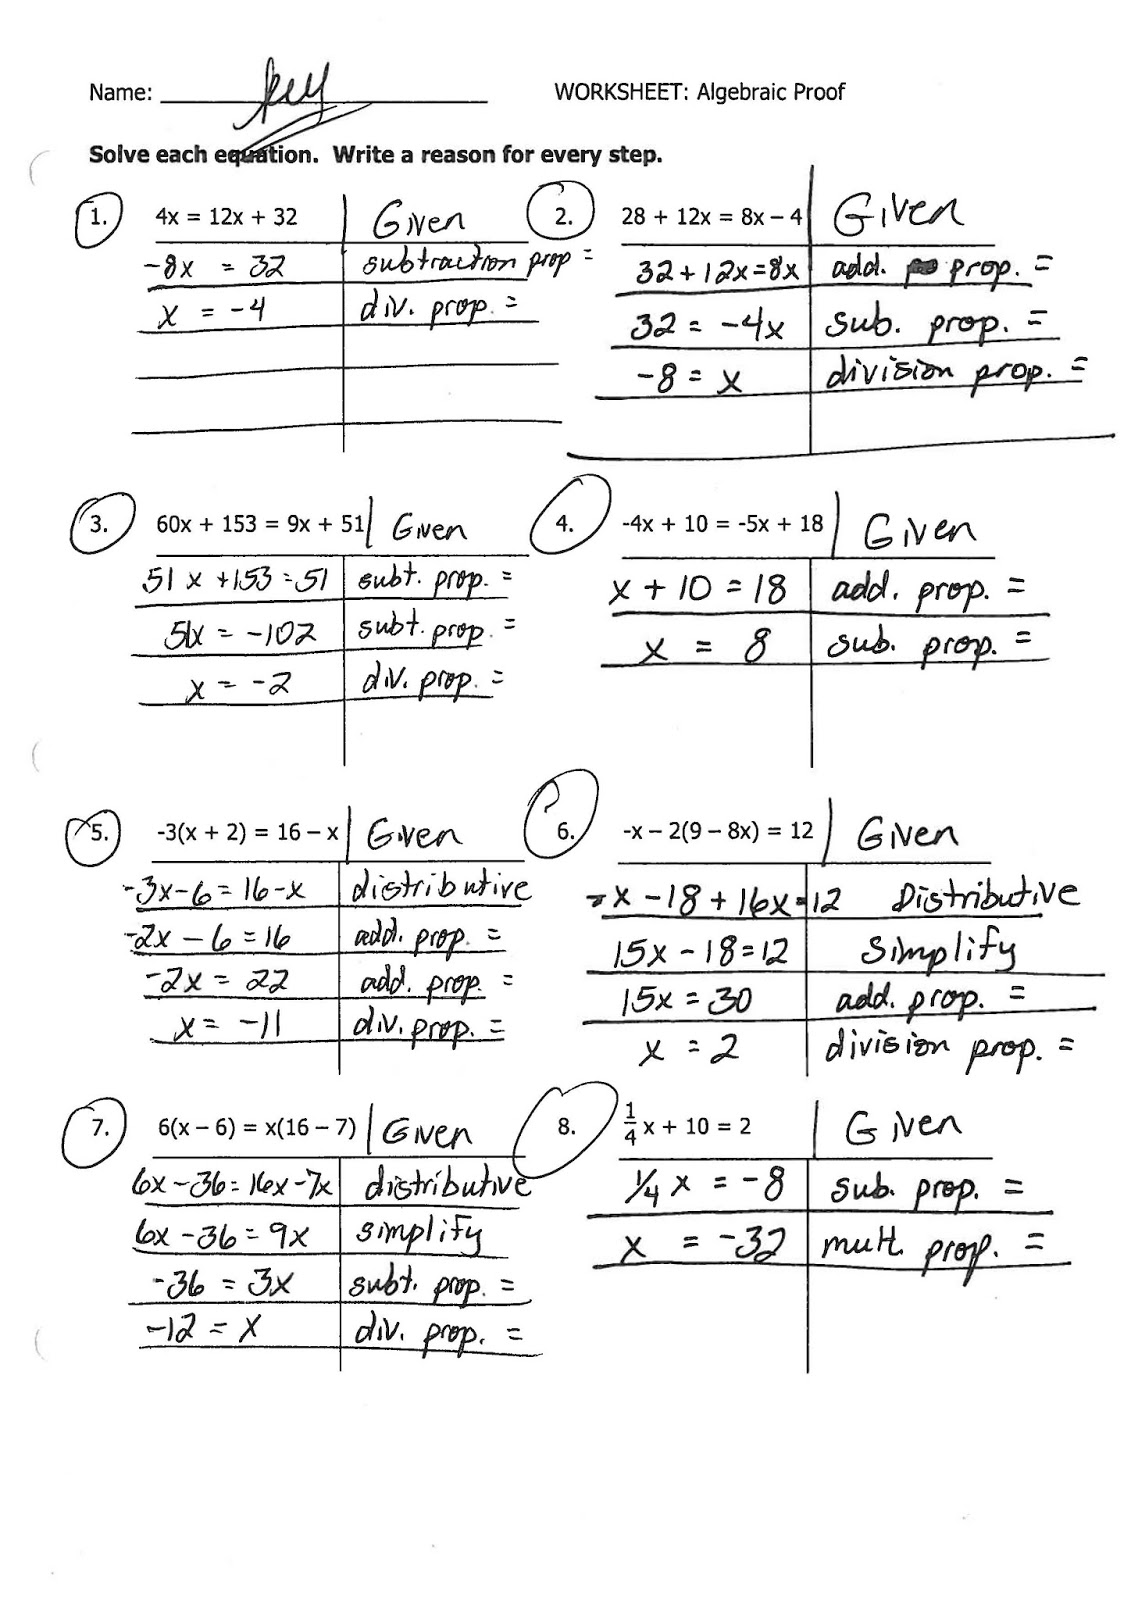 Mr Landers Math Classes HHS Honors Geometry 922 – Algebraic Proofs Worksheet with Answers